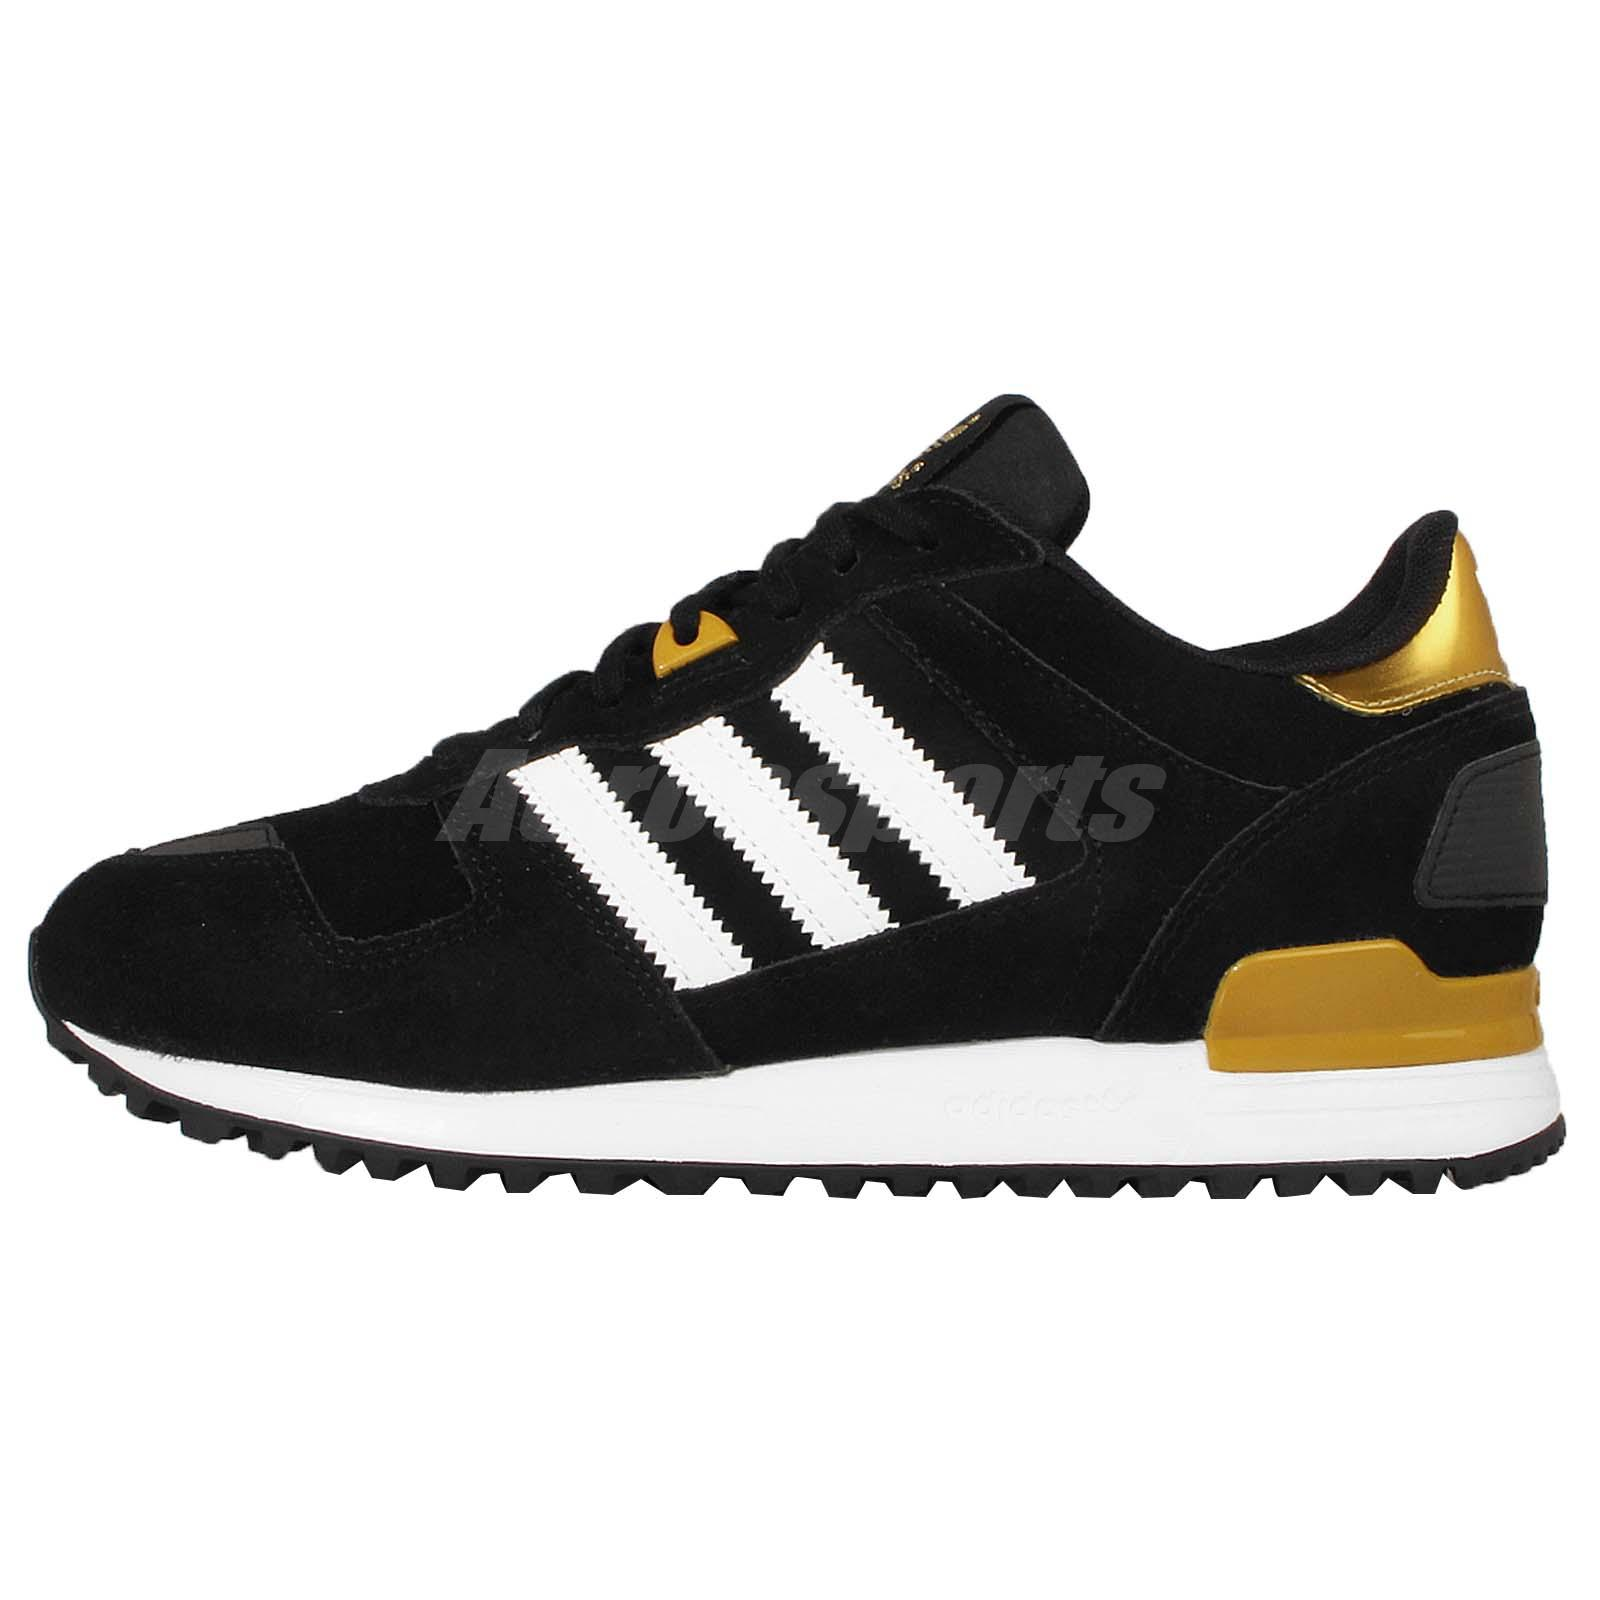 Adidas Originals ZX 700 W Black Gold Suede WOmens Retro Shoes Sneakers  B25712